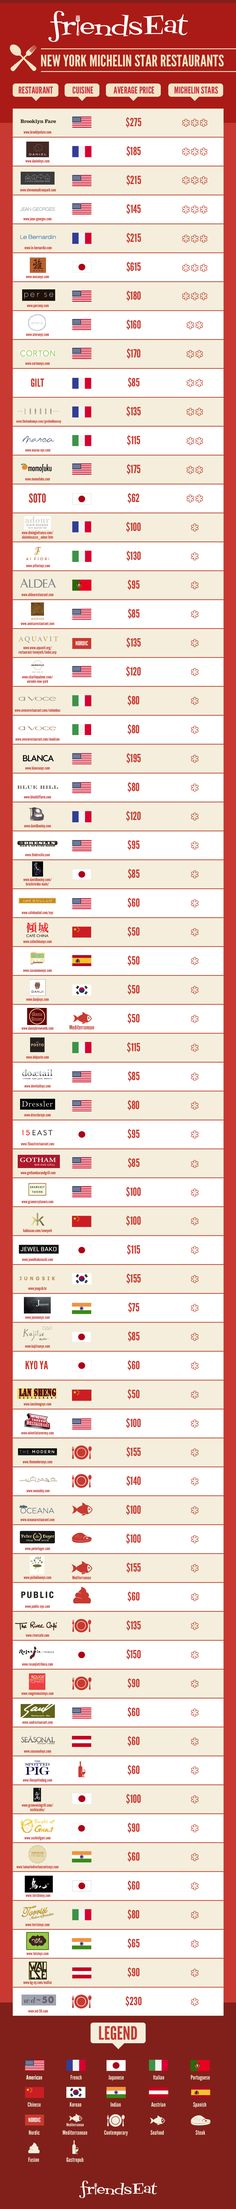 NYC's 2013 Michelin starred restaurants. Can't wait for the new list to come out.